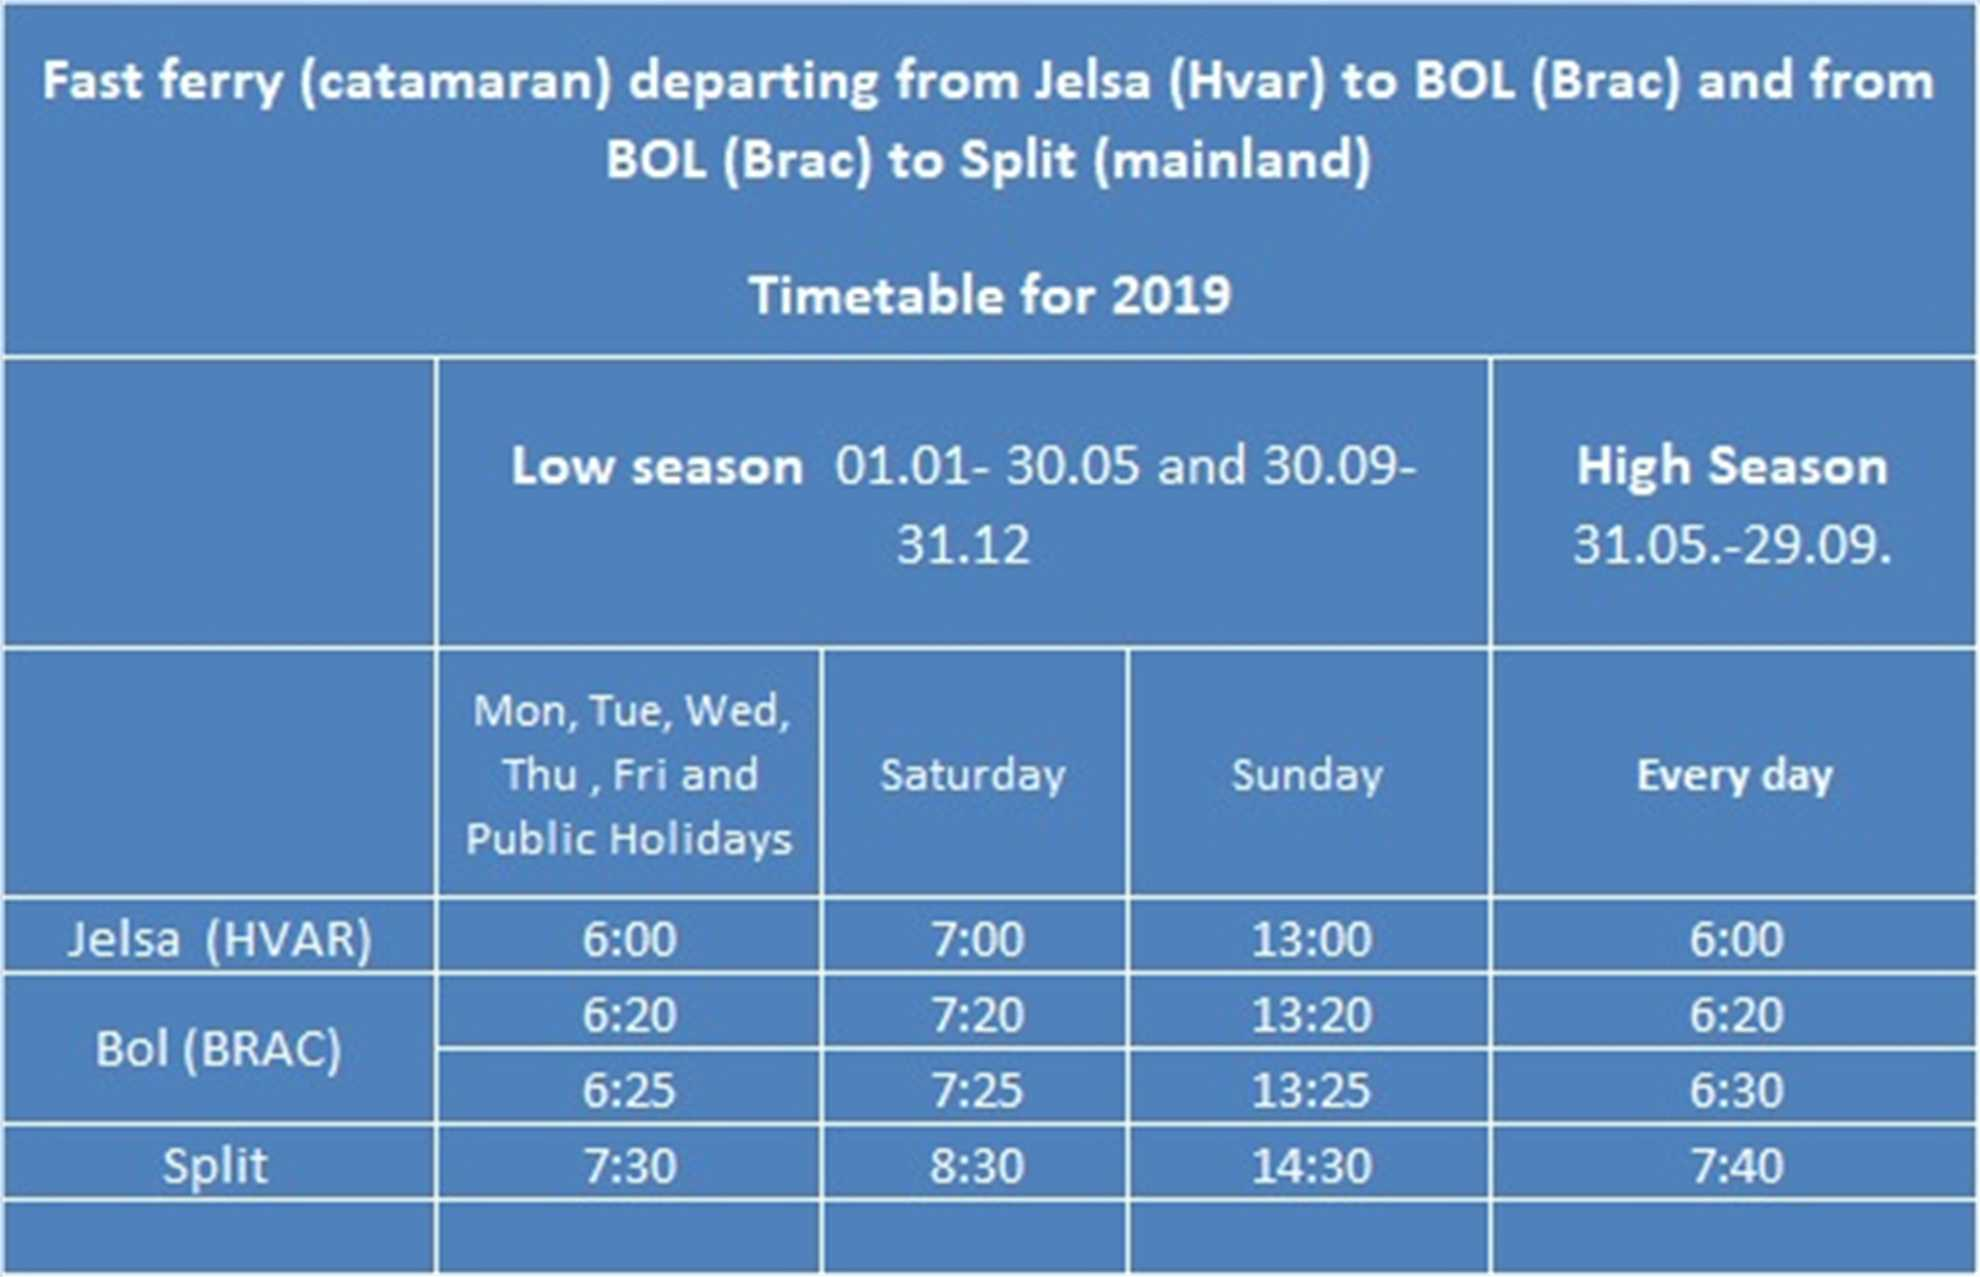 The timetable for the fast ferry from Jesla (Hvar) to  Bol (Brac) and to Split  in 2019: